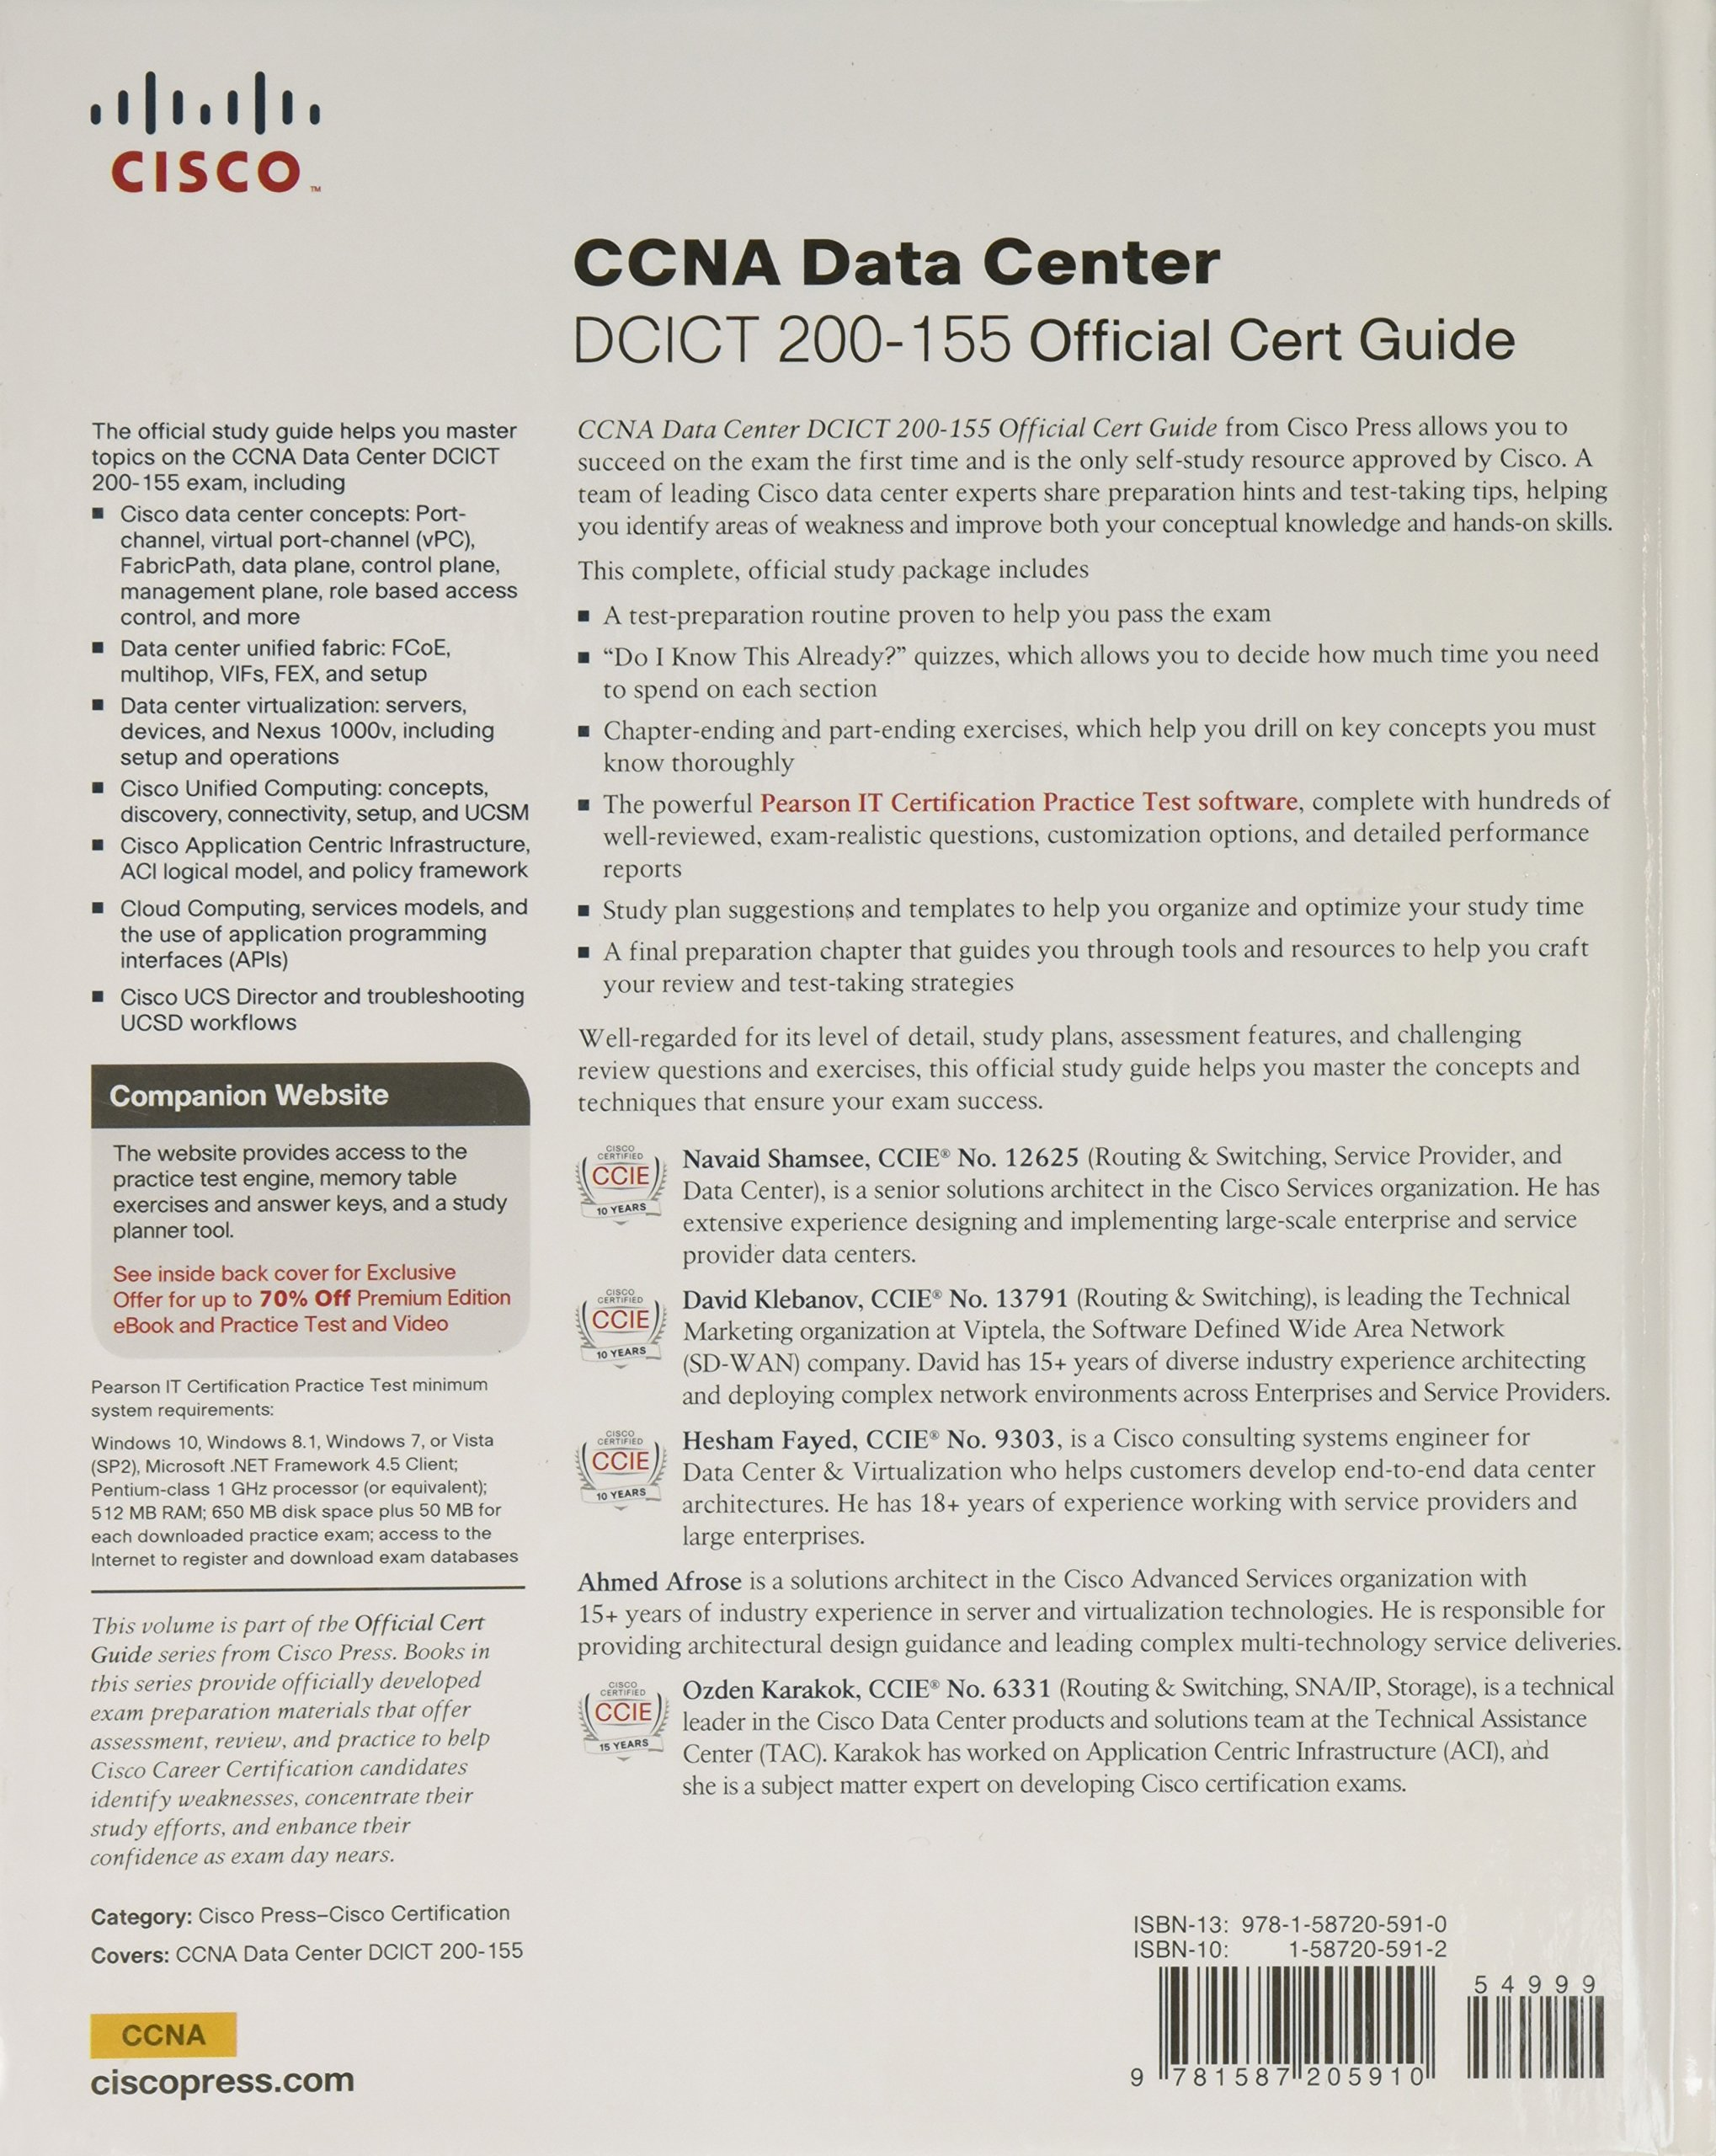 Buy ccna data center dcict 200 155 official cert guide 1e buy ccna data center dcict 200 155 official cert guide 1e certification guide book online at low prices in india ccna data center dcict 200 155 xflitez Gallery